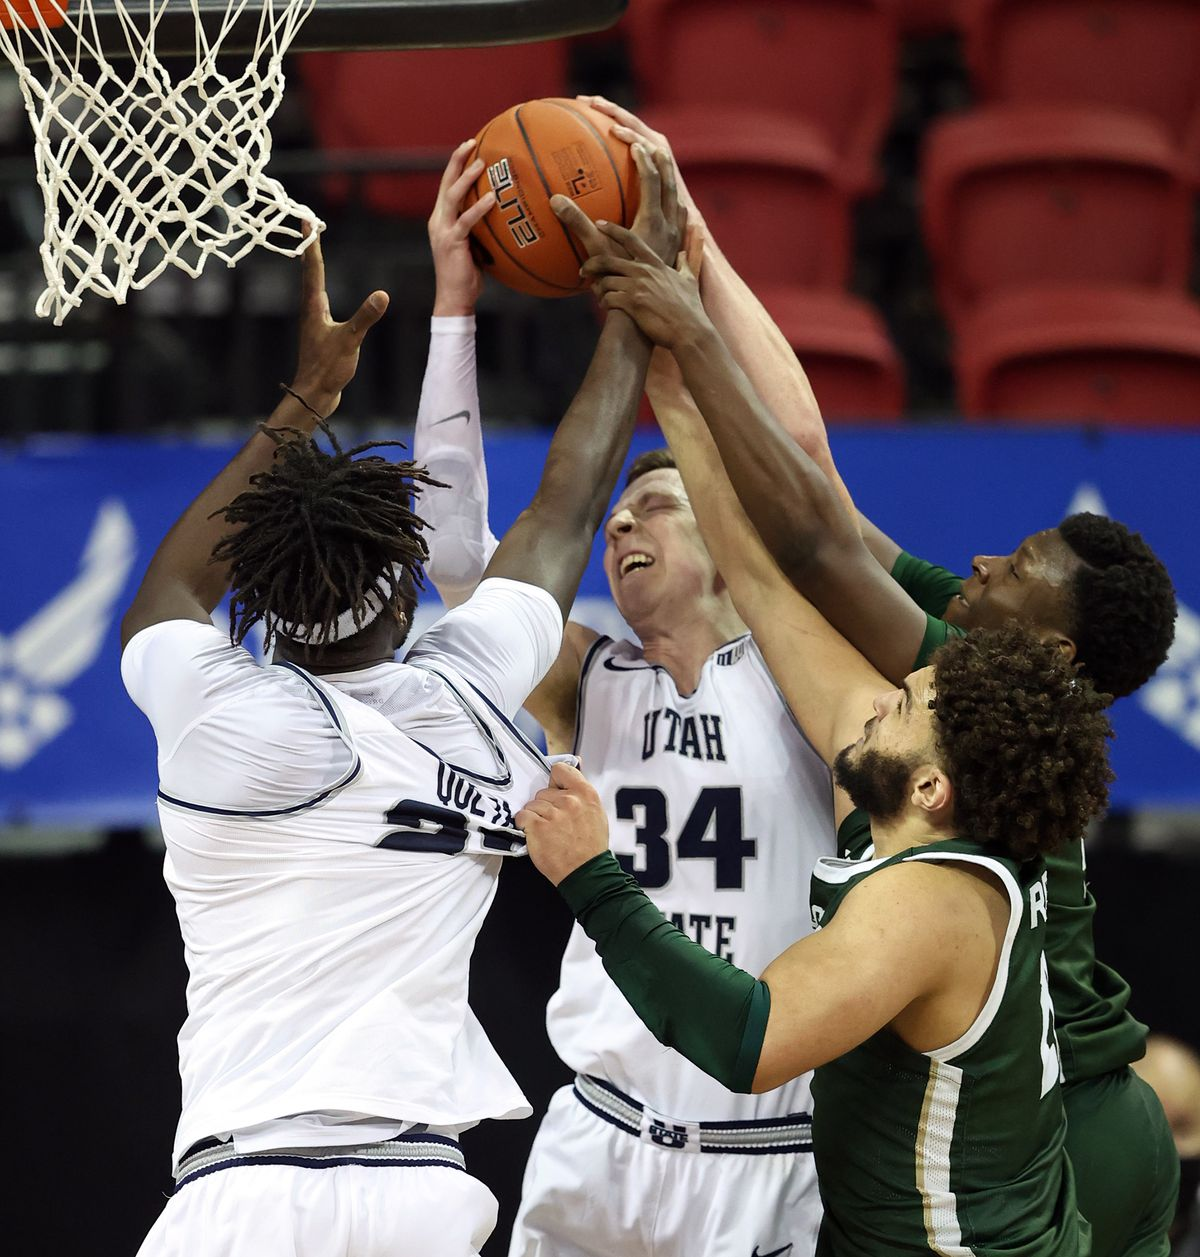 Utah State Aggies center Neemias Queta (23) has his jersey pulled by Colorado State Rams guard David Roddy (21) as he and teammate Utah State Aggies forward Justin Bean (34) go after a rebound as Utah State and Colorado State play in the Mountain West Tournament at the Thomas & Mack Center in Las Vegas on Friday, March 12, 2021. Utah State won 62-50.